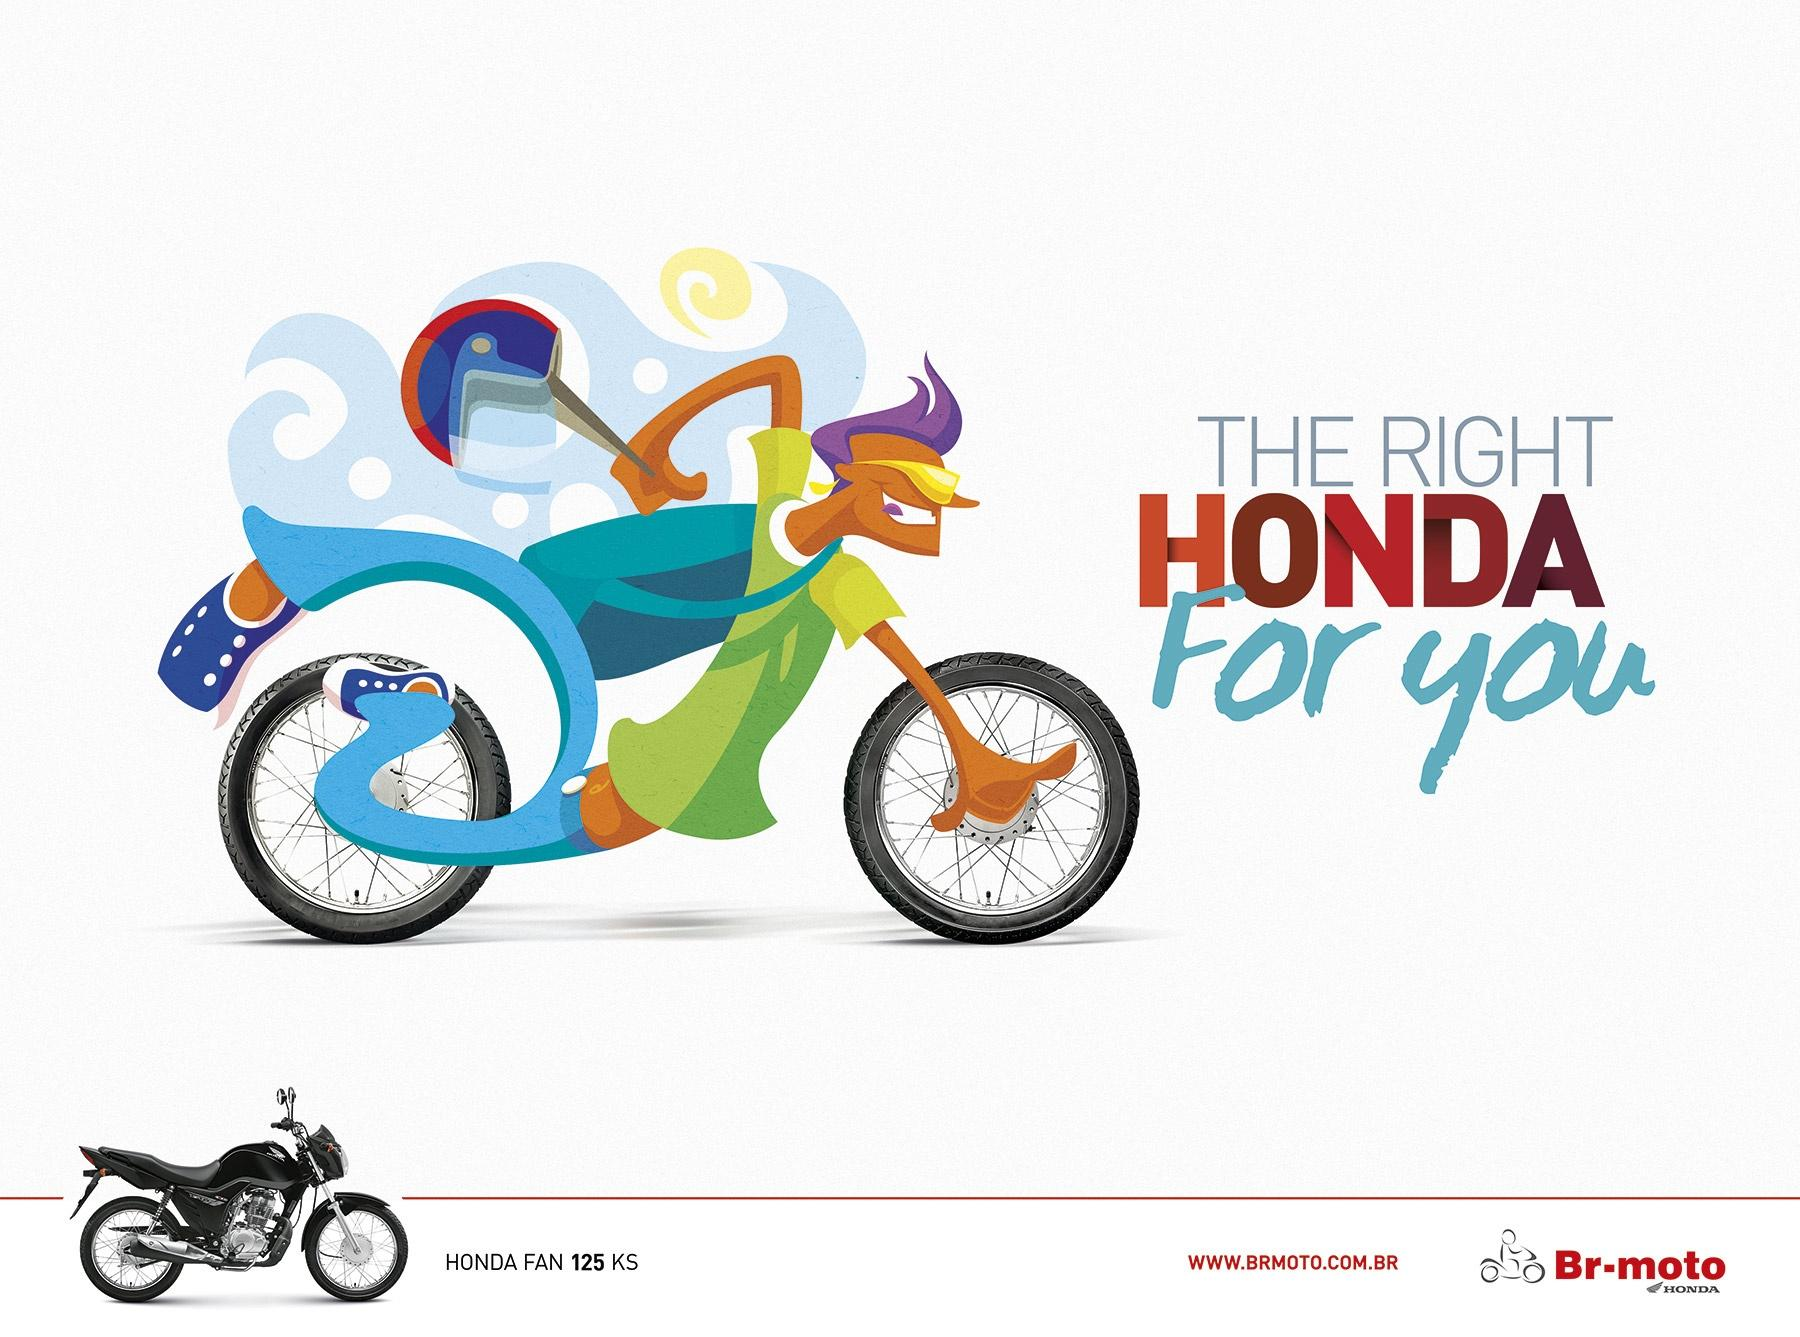 BR Motos Print Ad -  The right honda for you, 1